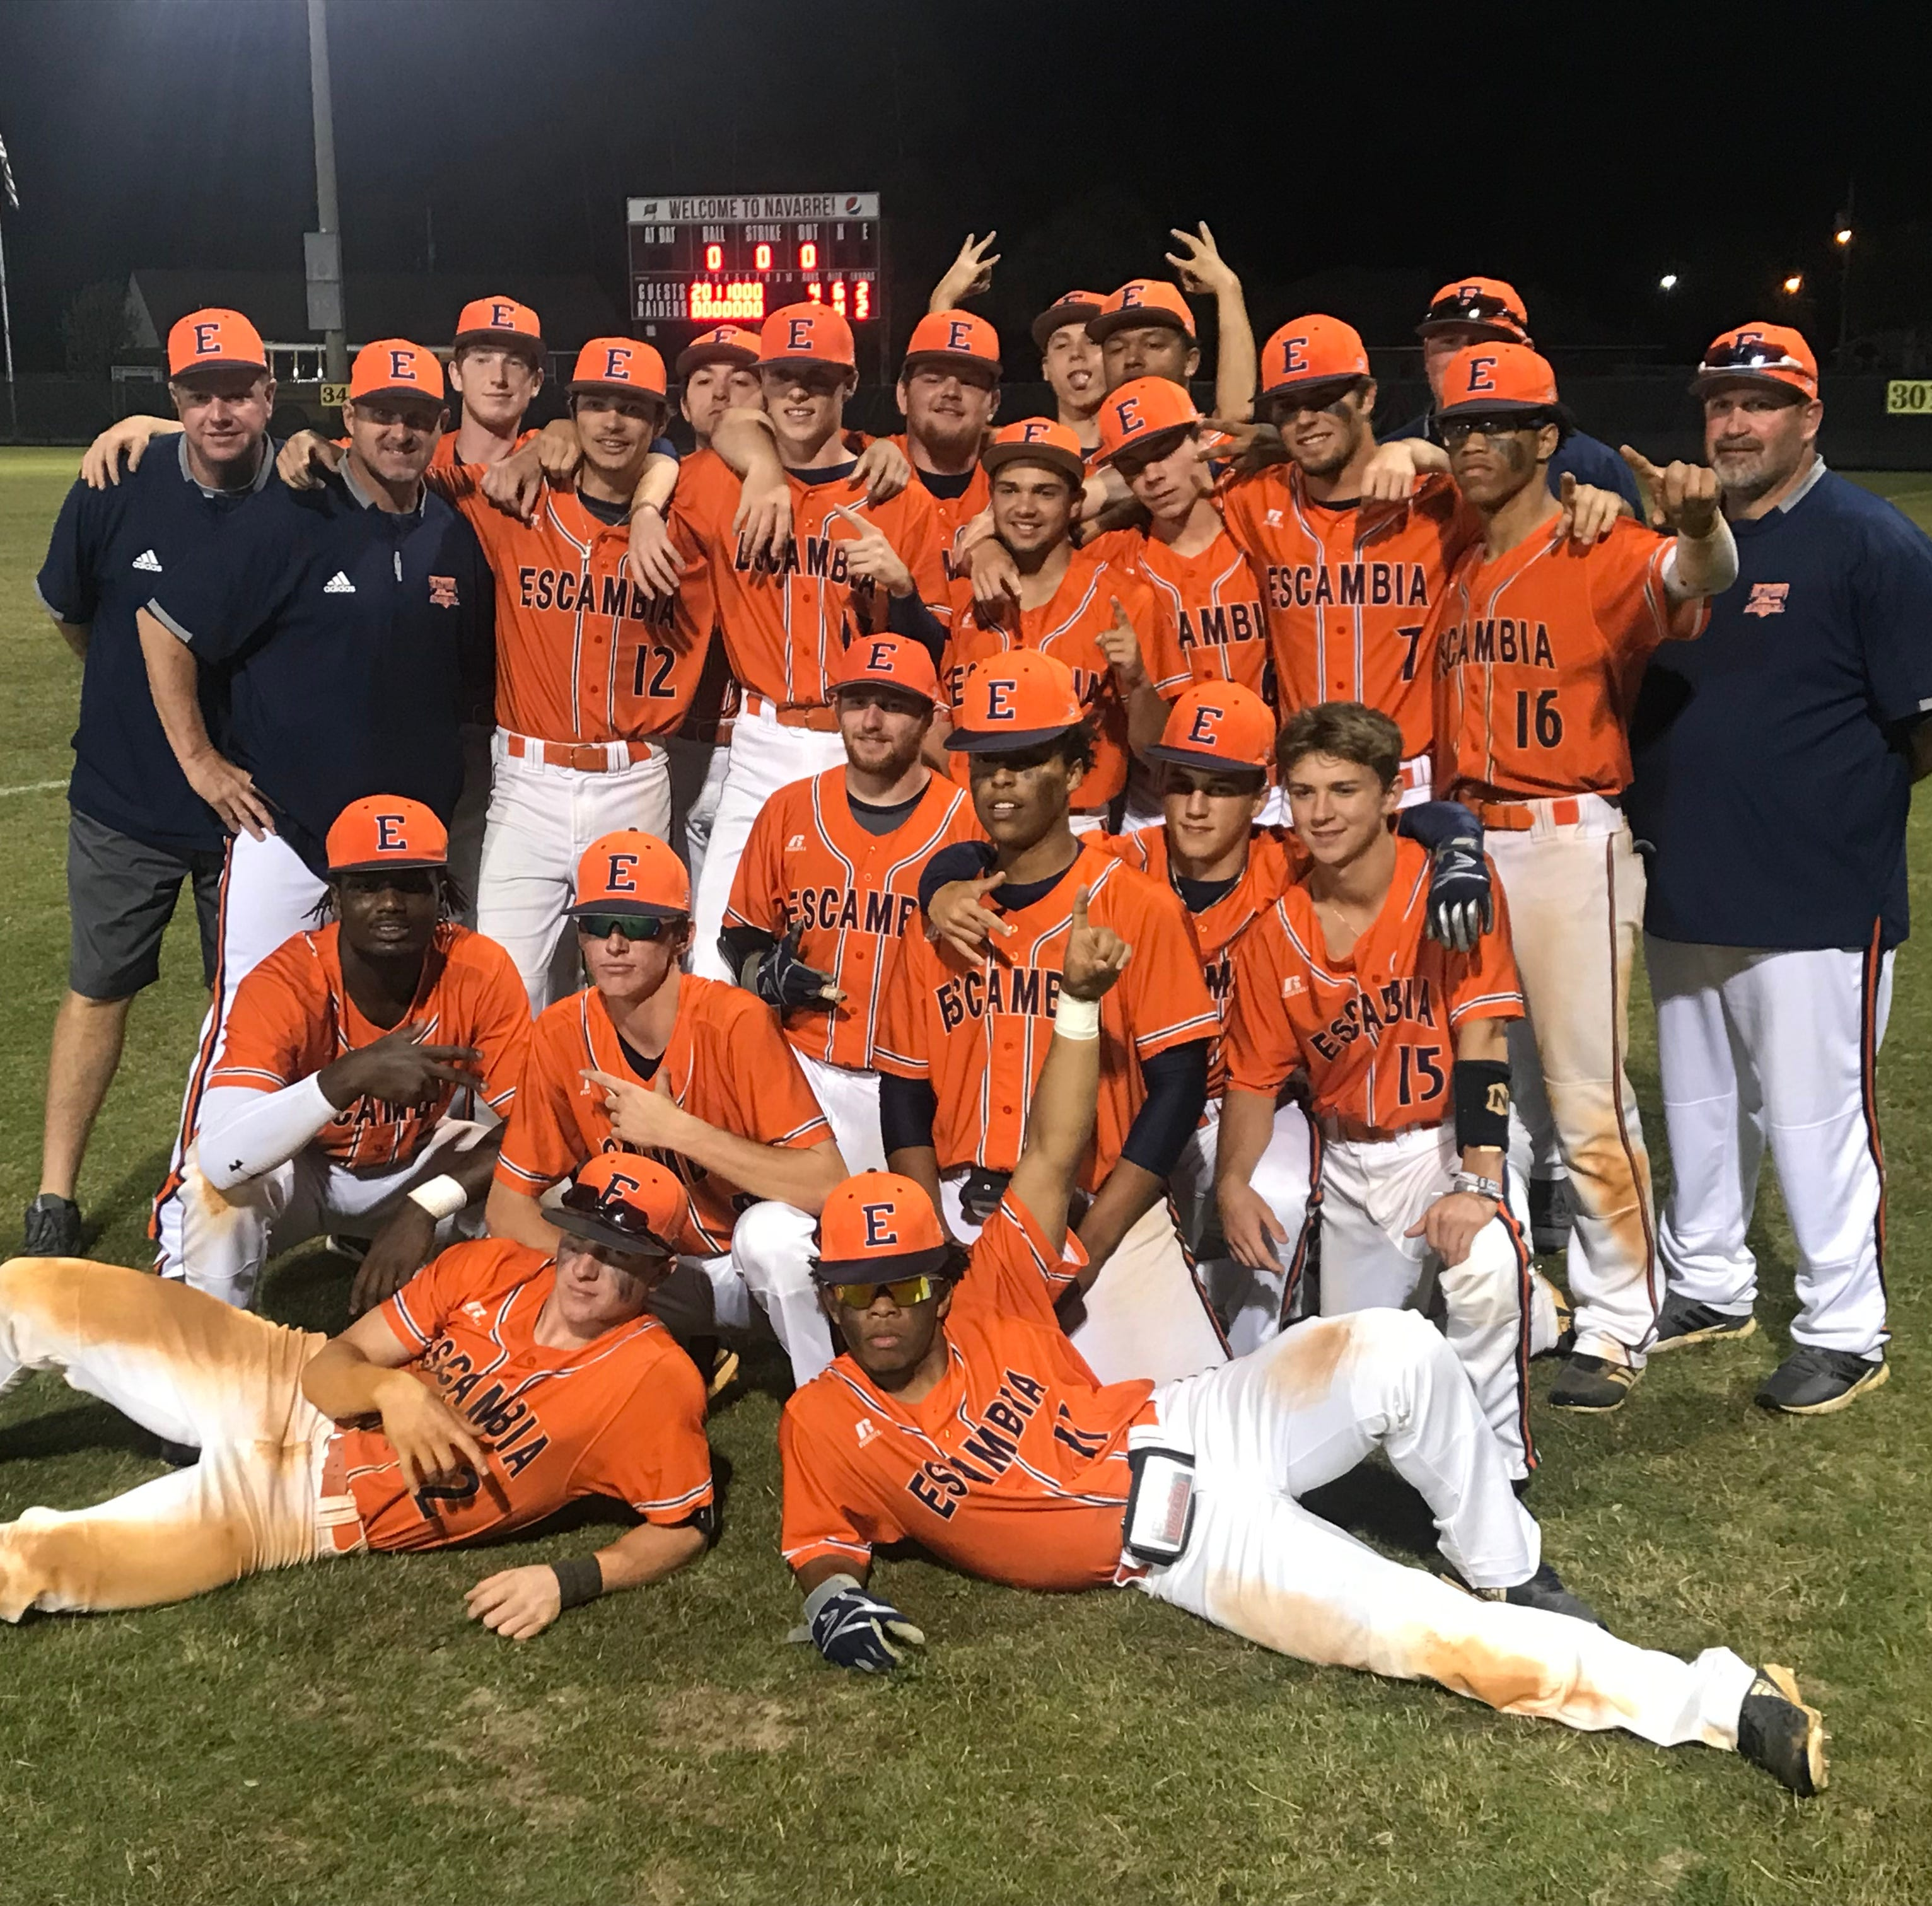 Escambia's Browne hurls another postseason gem, sets up Pine Forest rematch